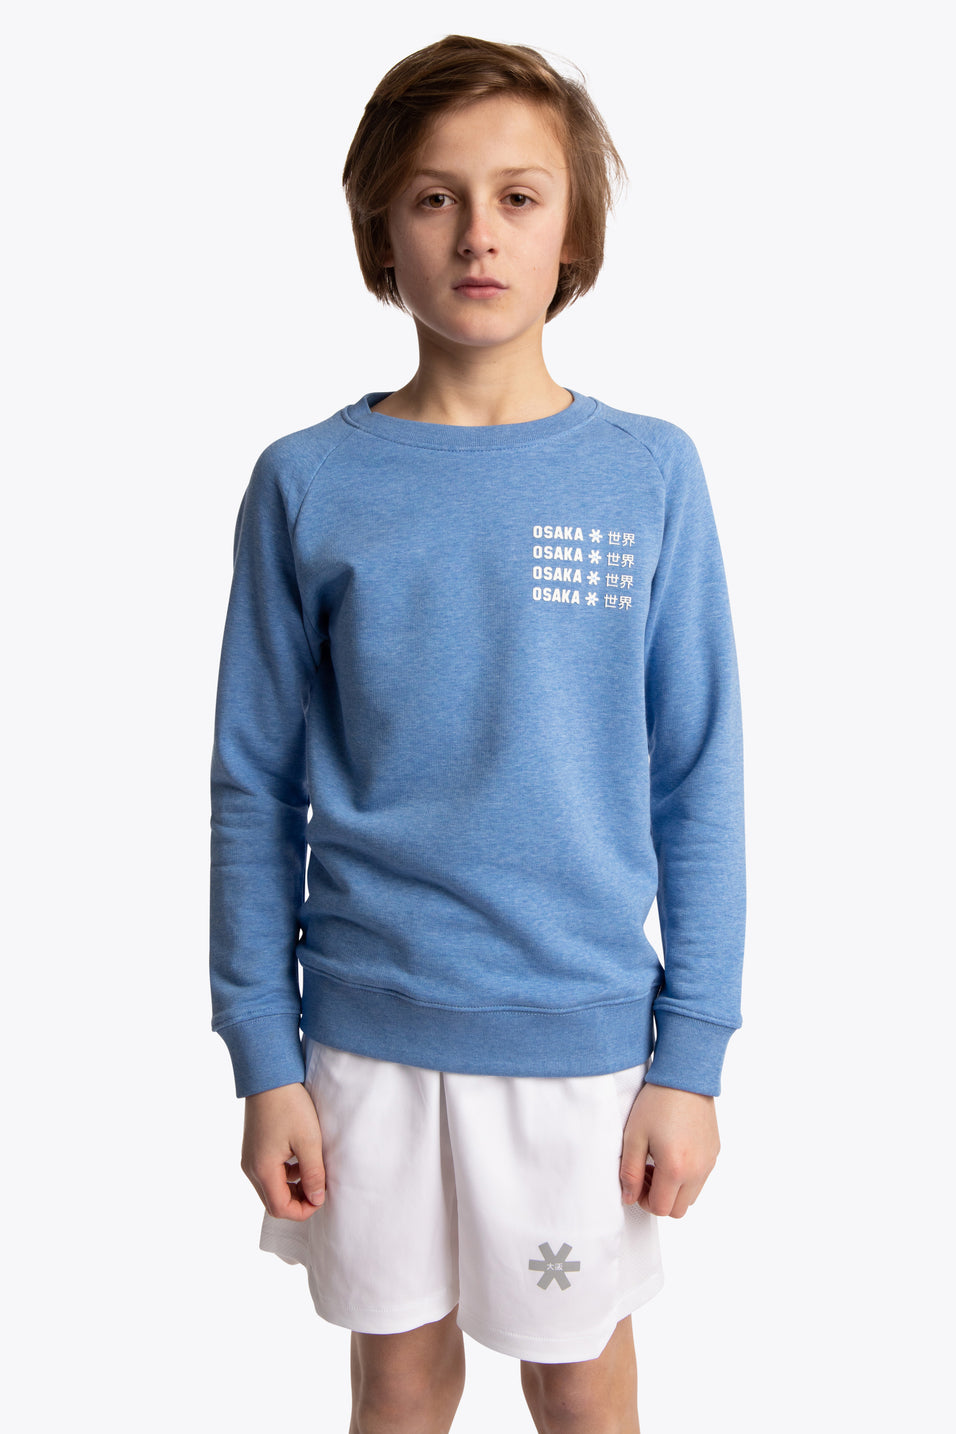 Deshi Sweater Pollocs Repeat White - Heather Ice Blue